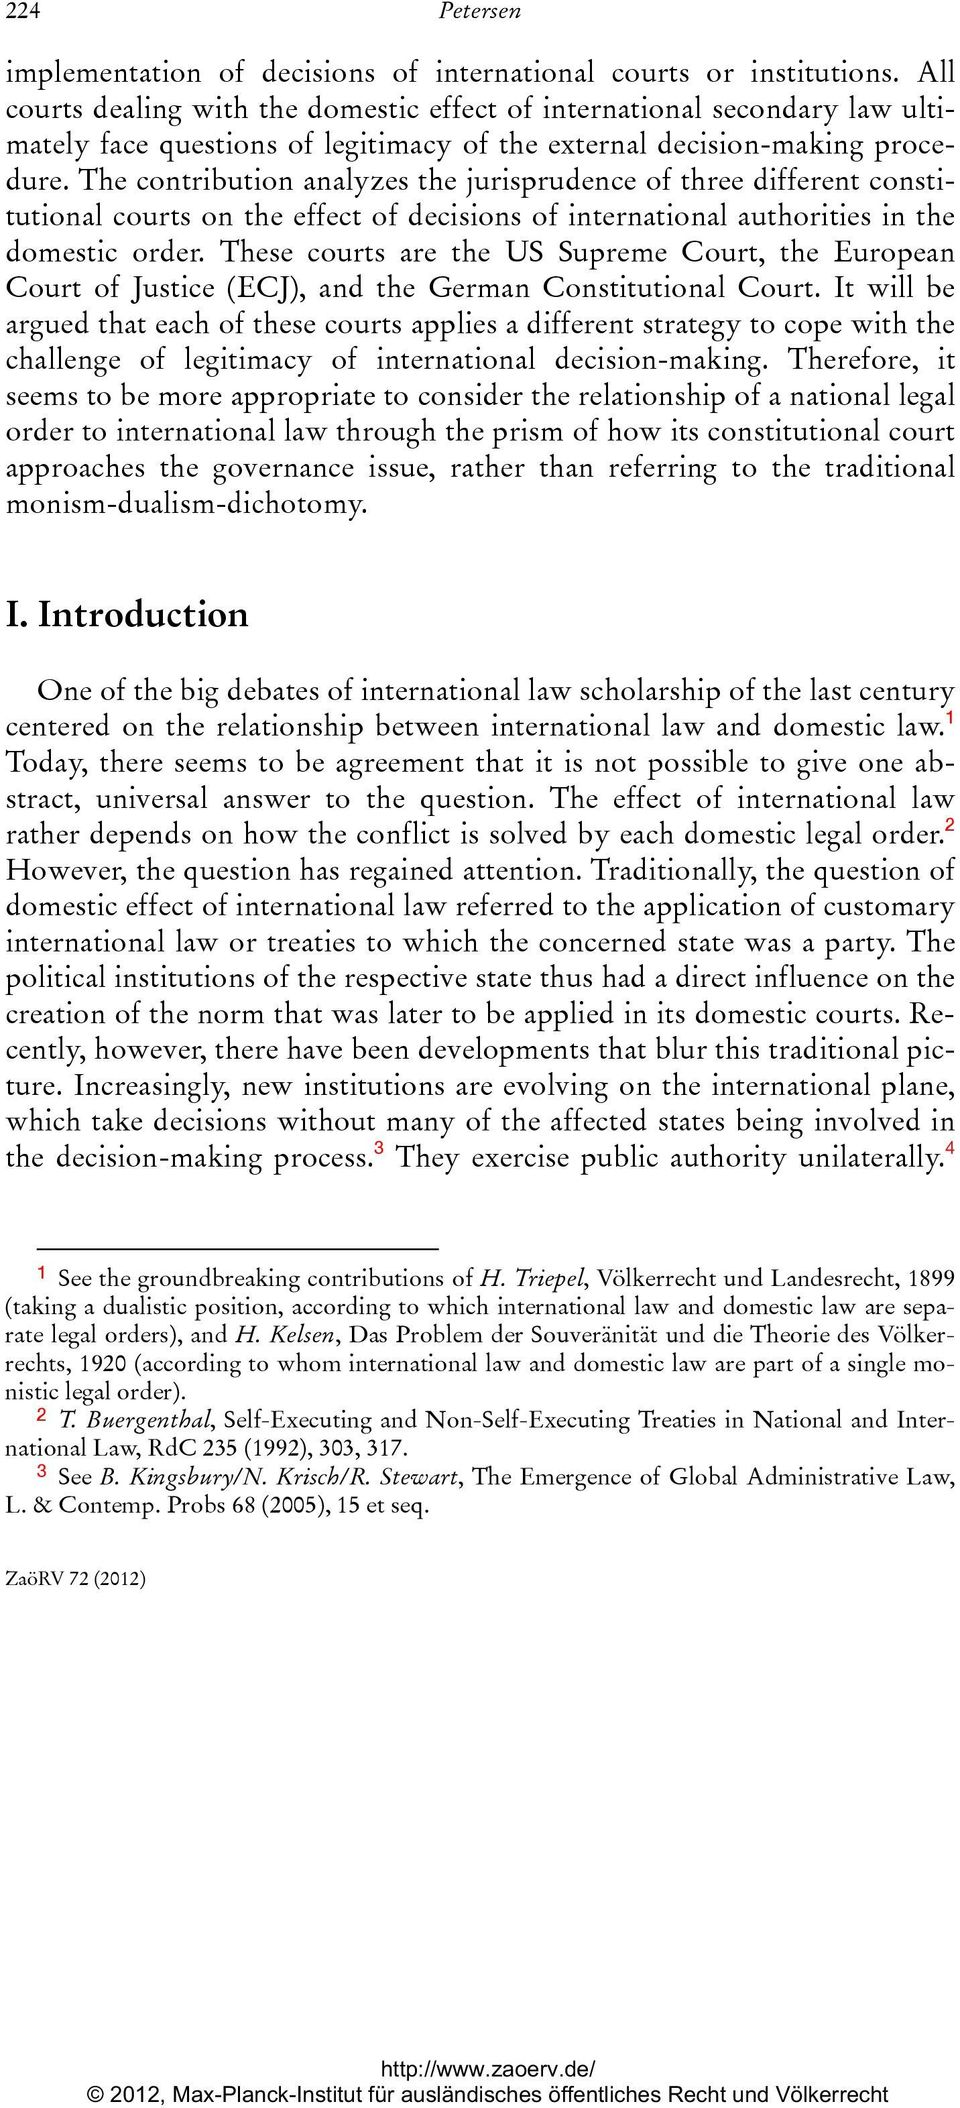 The contribution analyzes the jurisprudence of three different constitutional courts on the effect of decisions of international authorities in the domestic order.